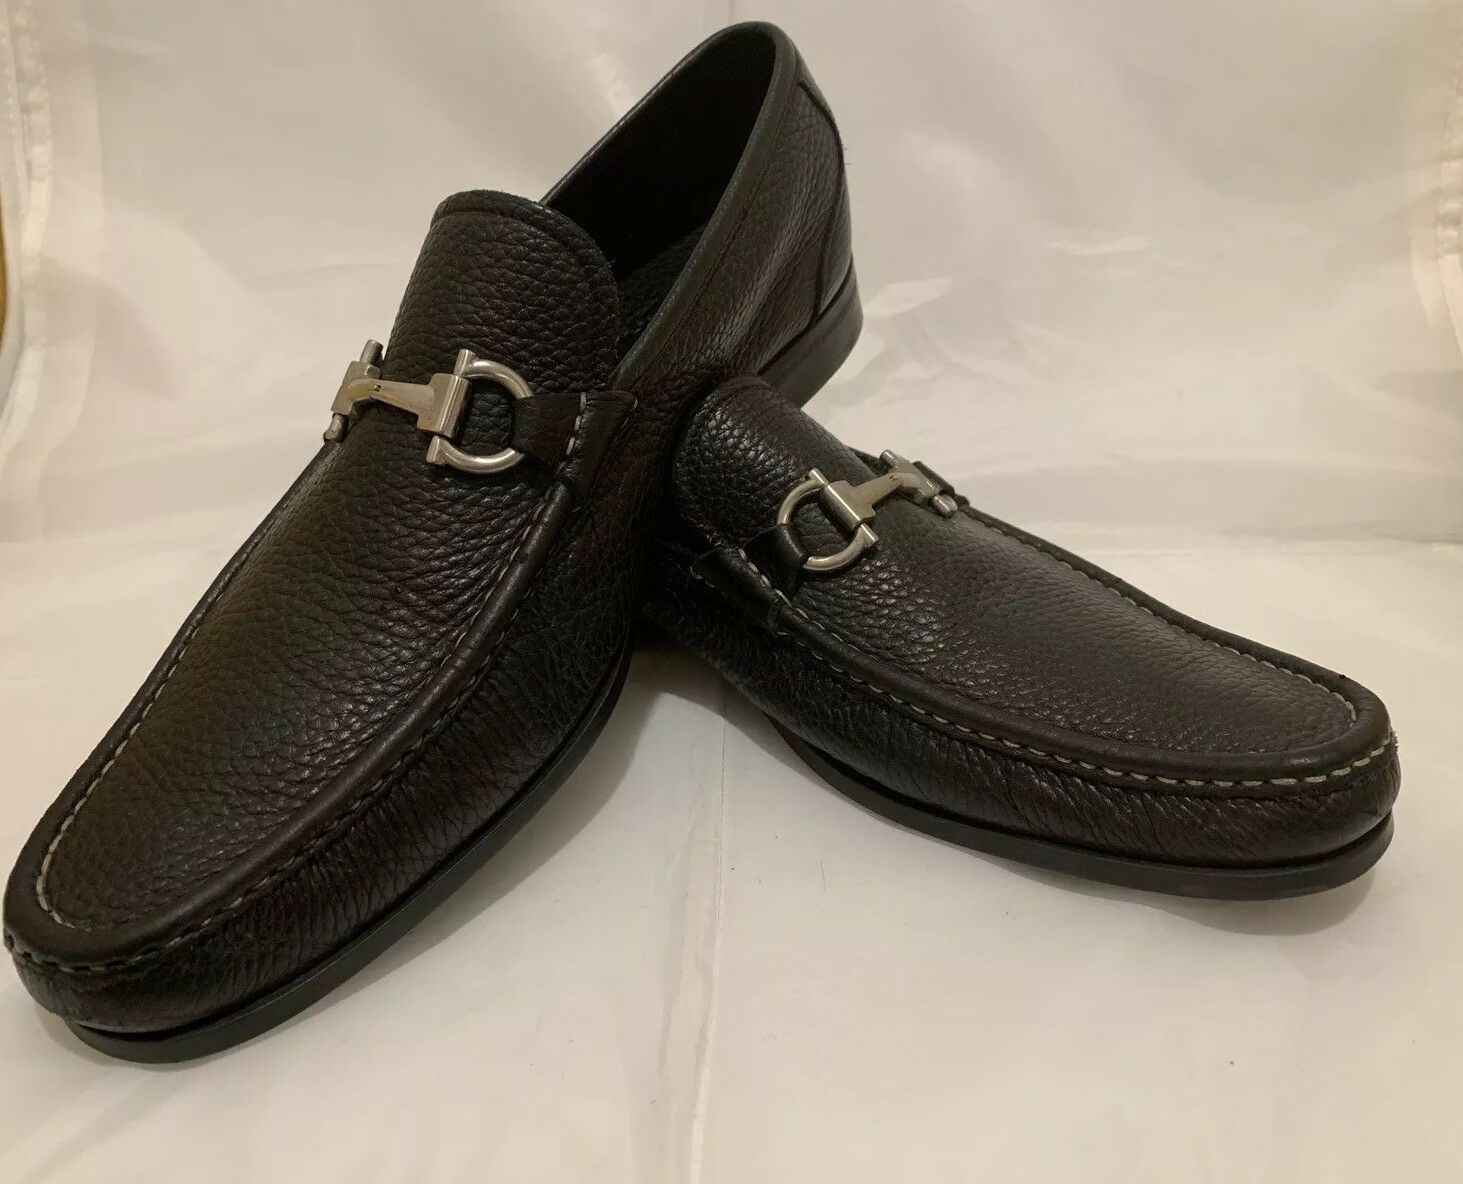 SALVATORE FERRAGAMO GRANDIOSO noir en cuir souple Mors de Cheval SZ10.5 usage unique